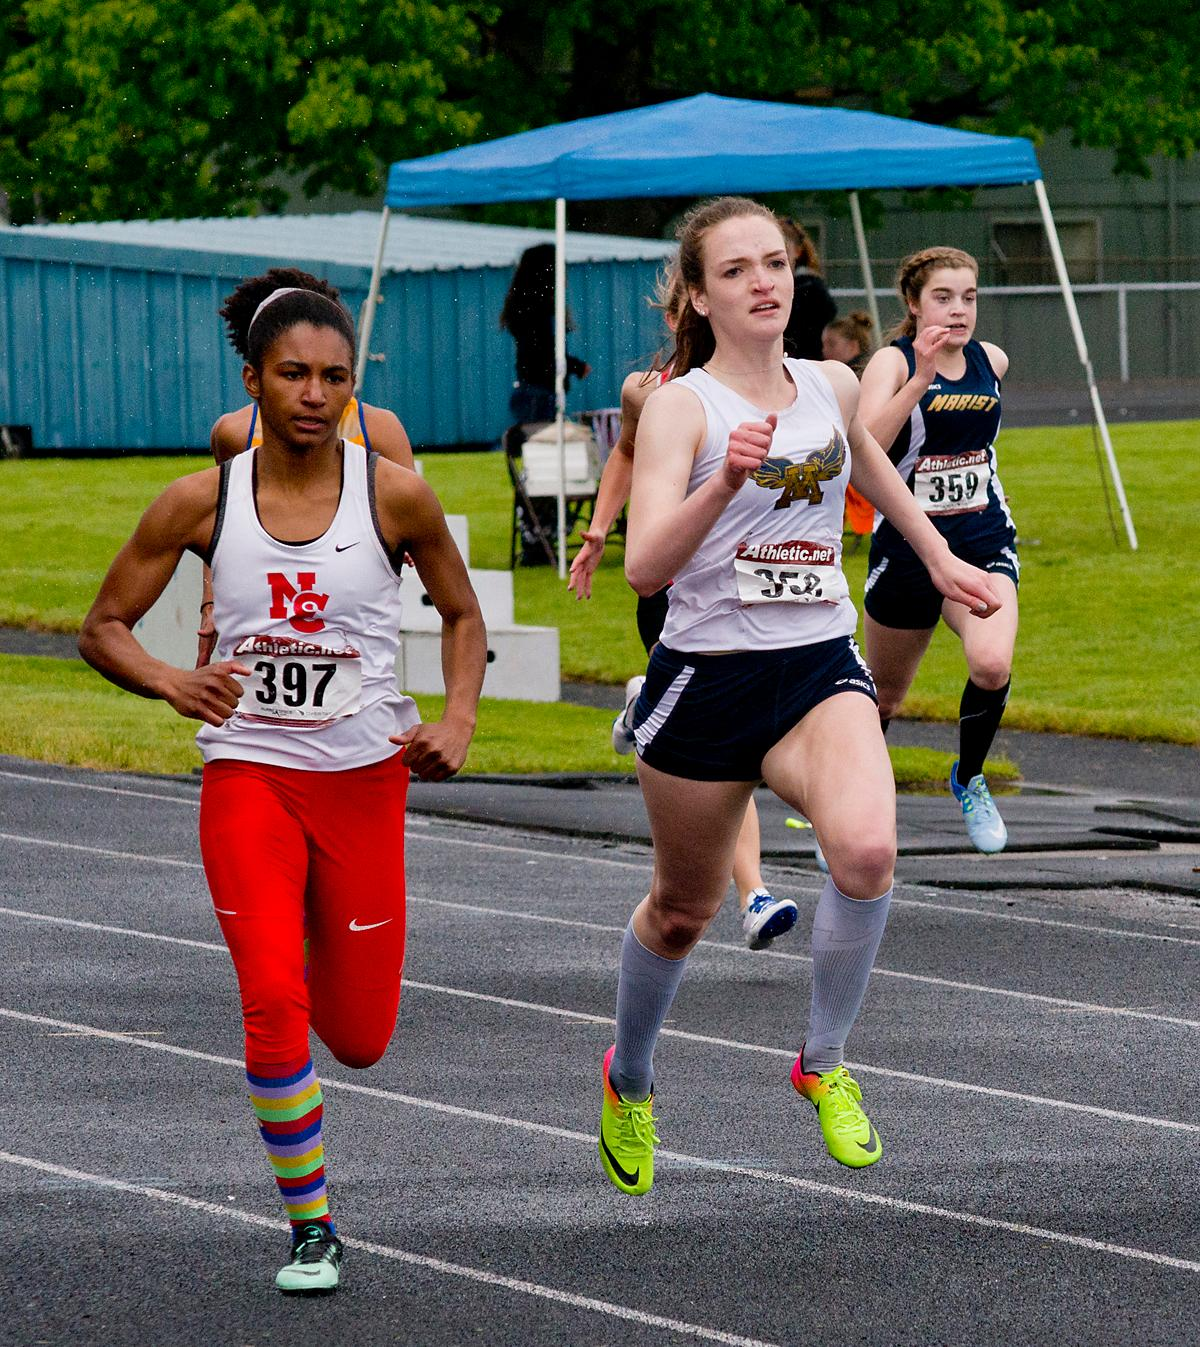 Nina Richardson (left) from North Eugene wins the 200 meter dash with a time of 26.32 at the 5A-3 Midwestern League District Track Meet. Photo by Dan Morrison, Oregon News Lab